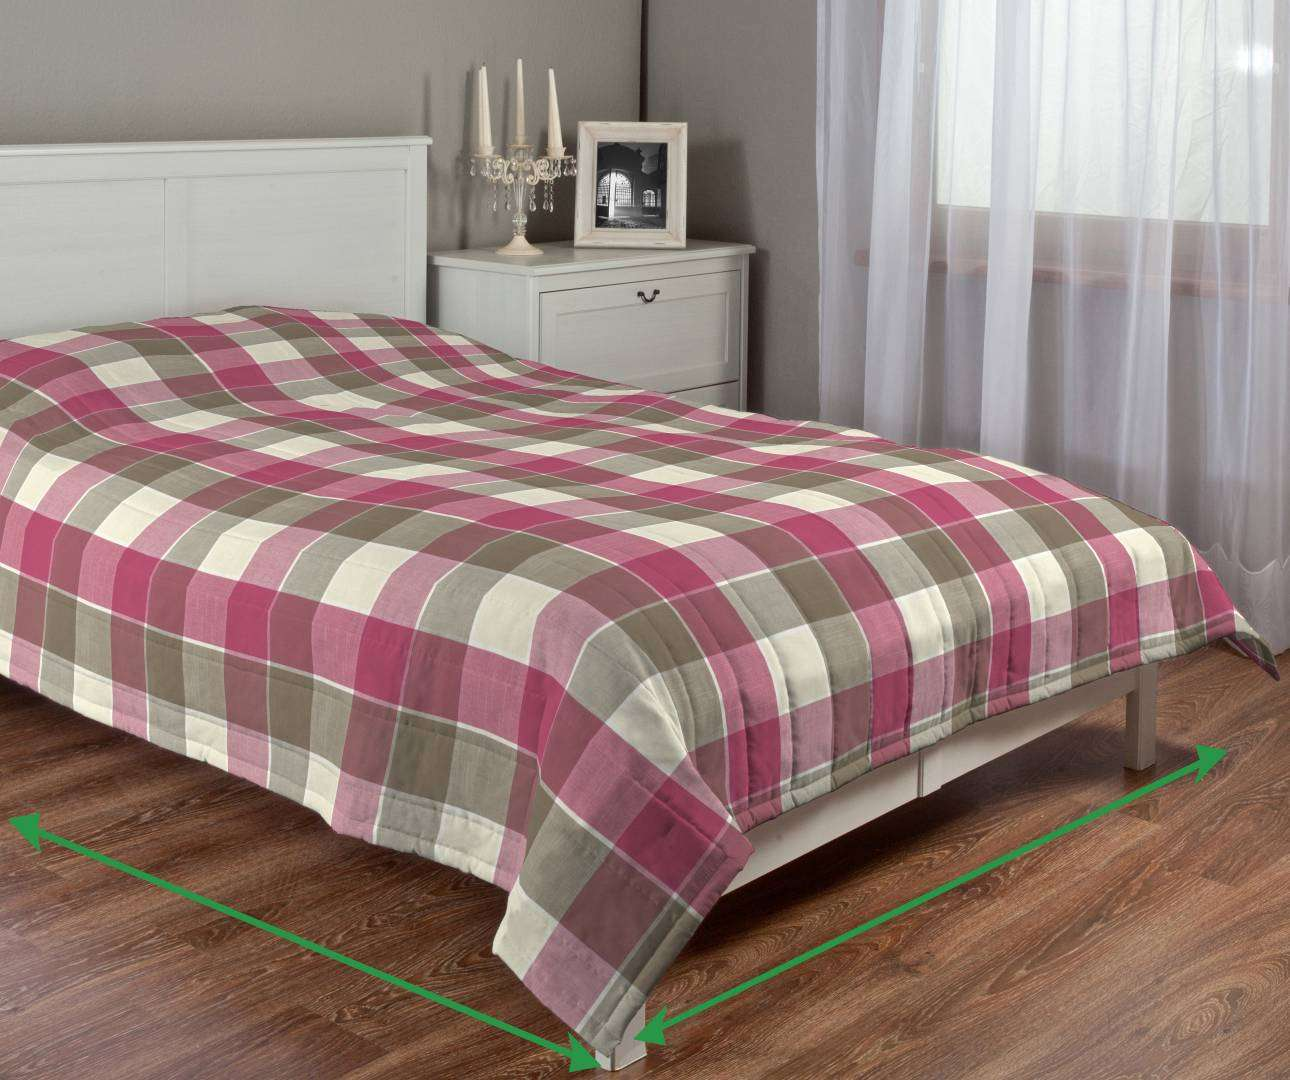 Quilted throw (vertical quilt pattern) in collection Cardiff, fabric: 136-31